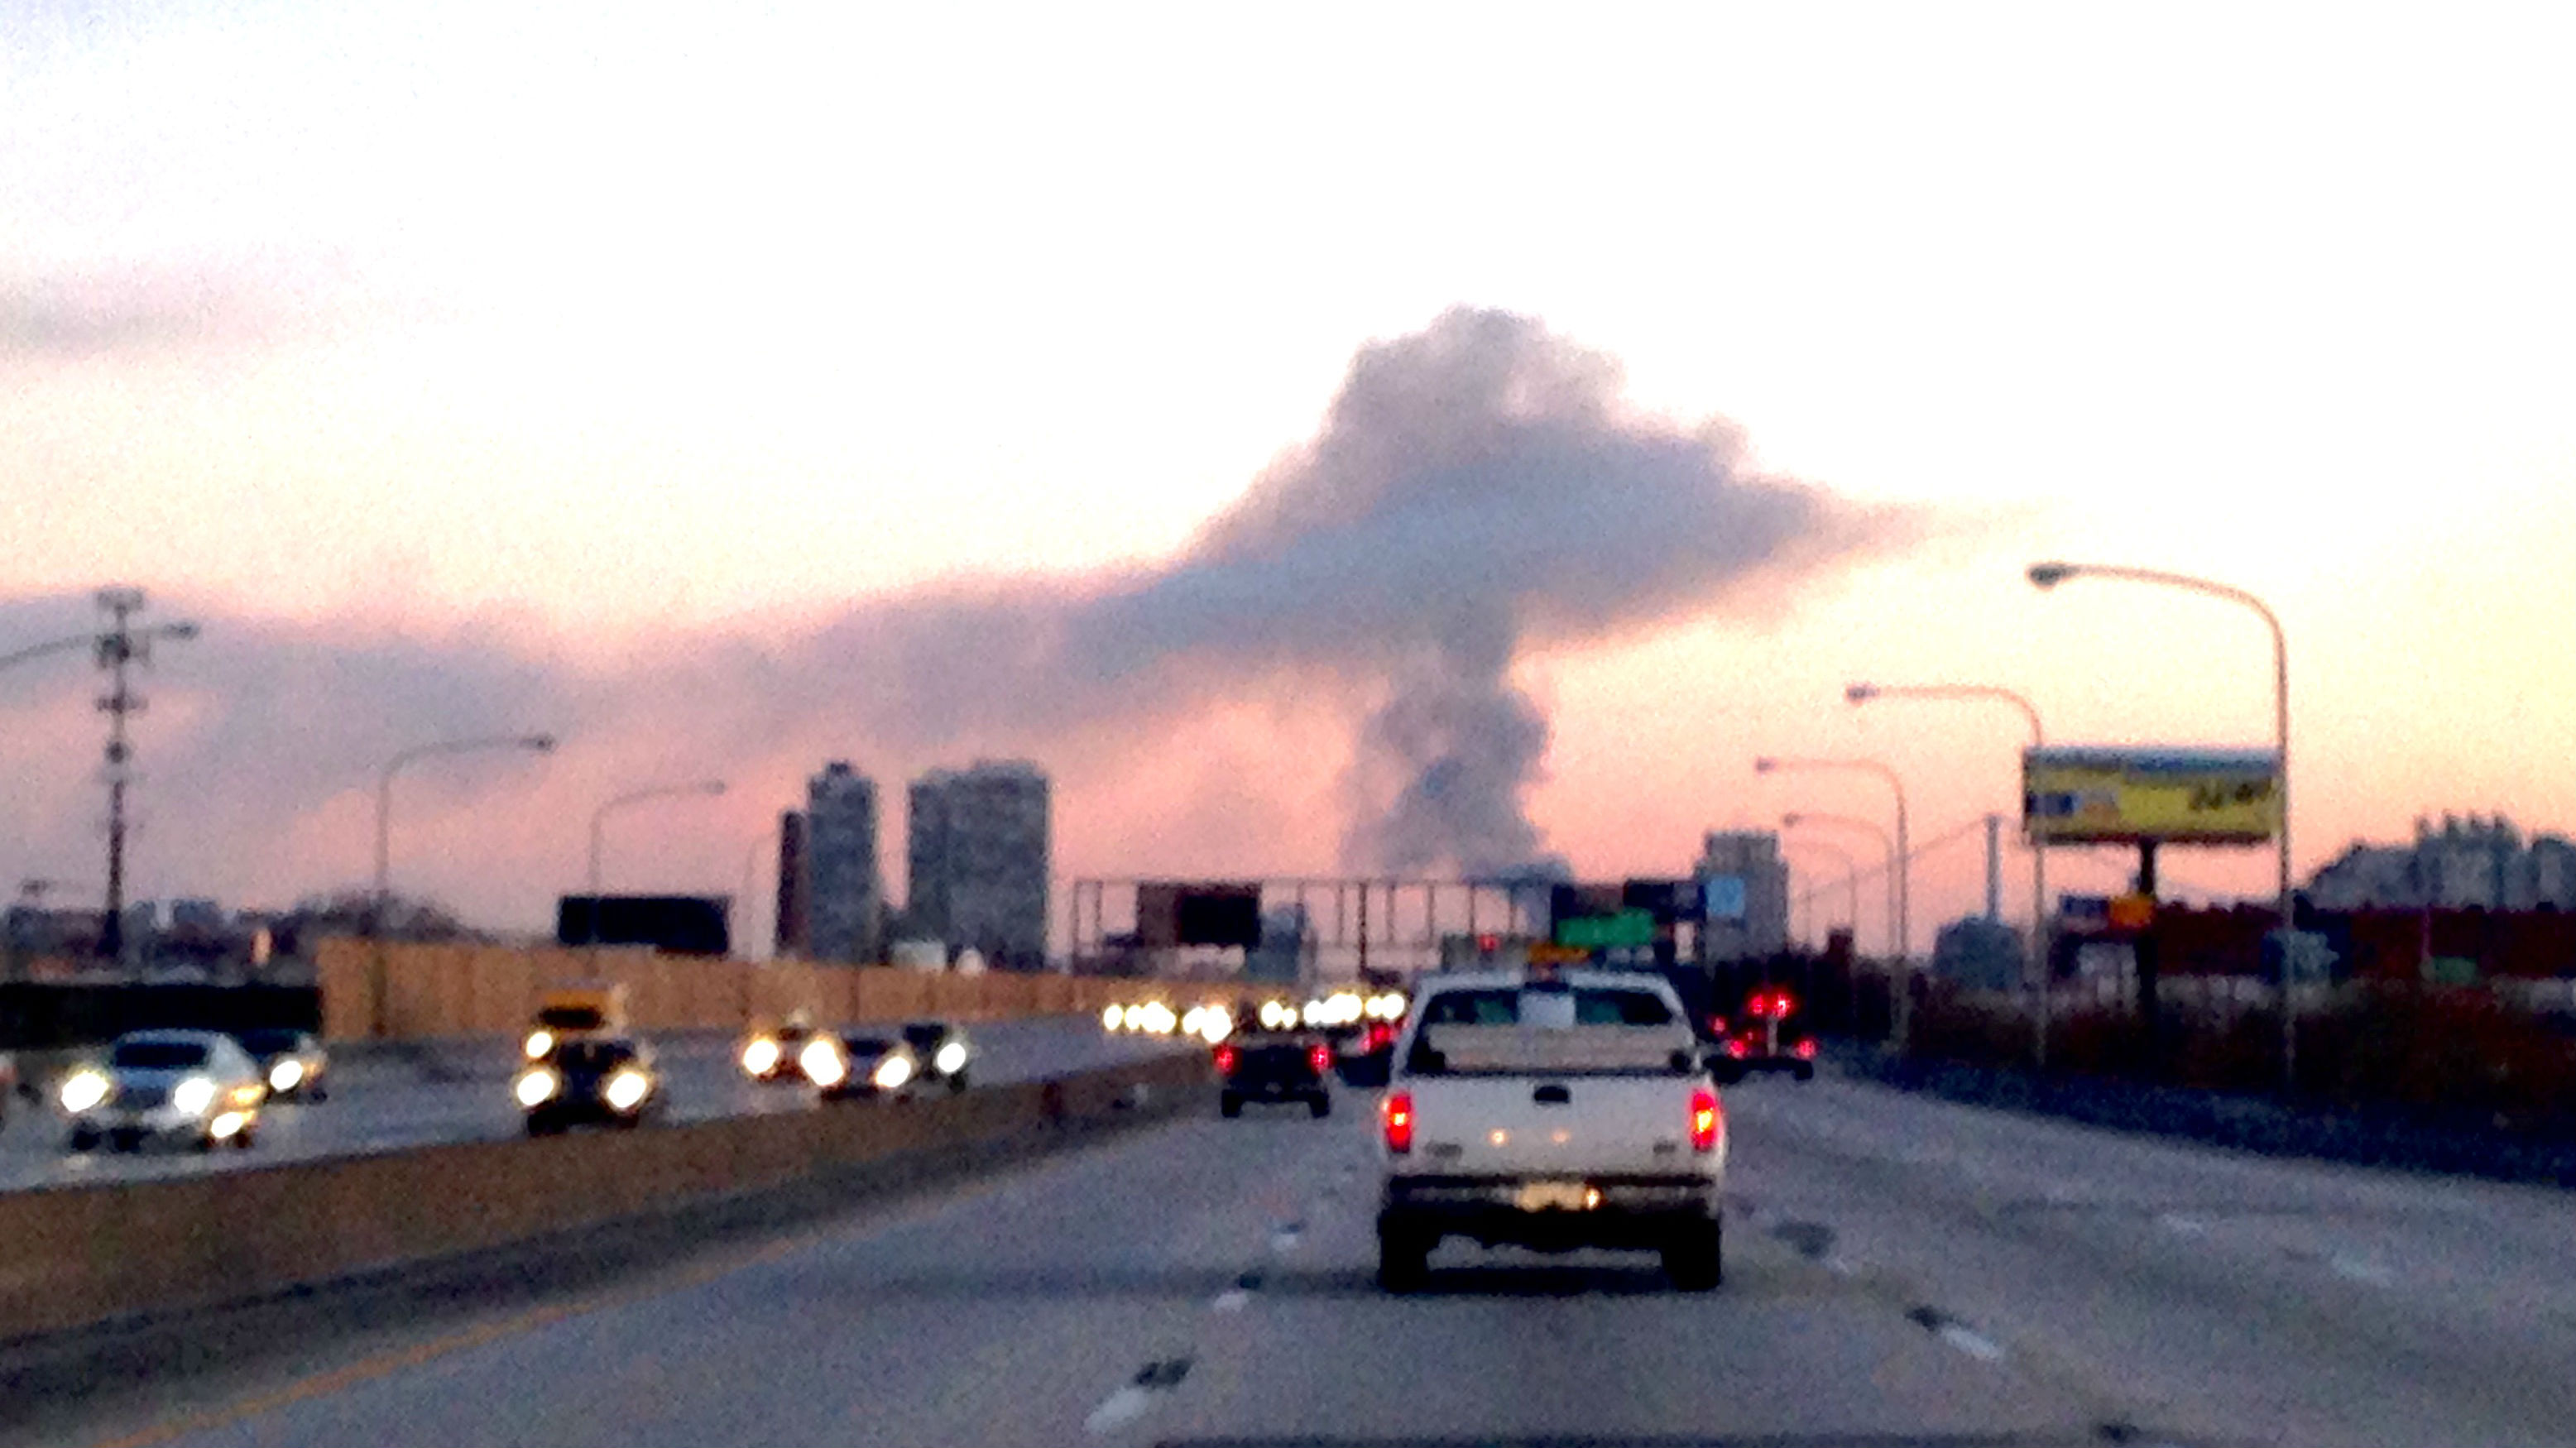 The West Kensington fire, seen from I-95. (Credit: Mike Teiper/CBS3)